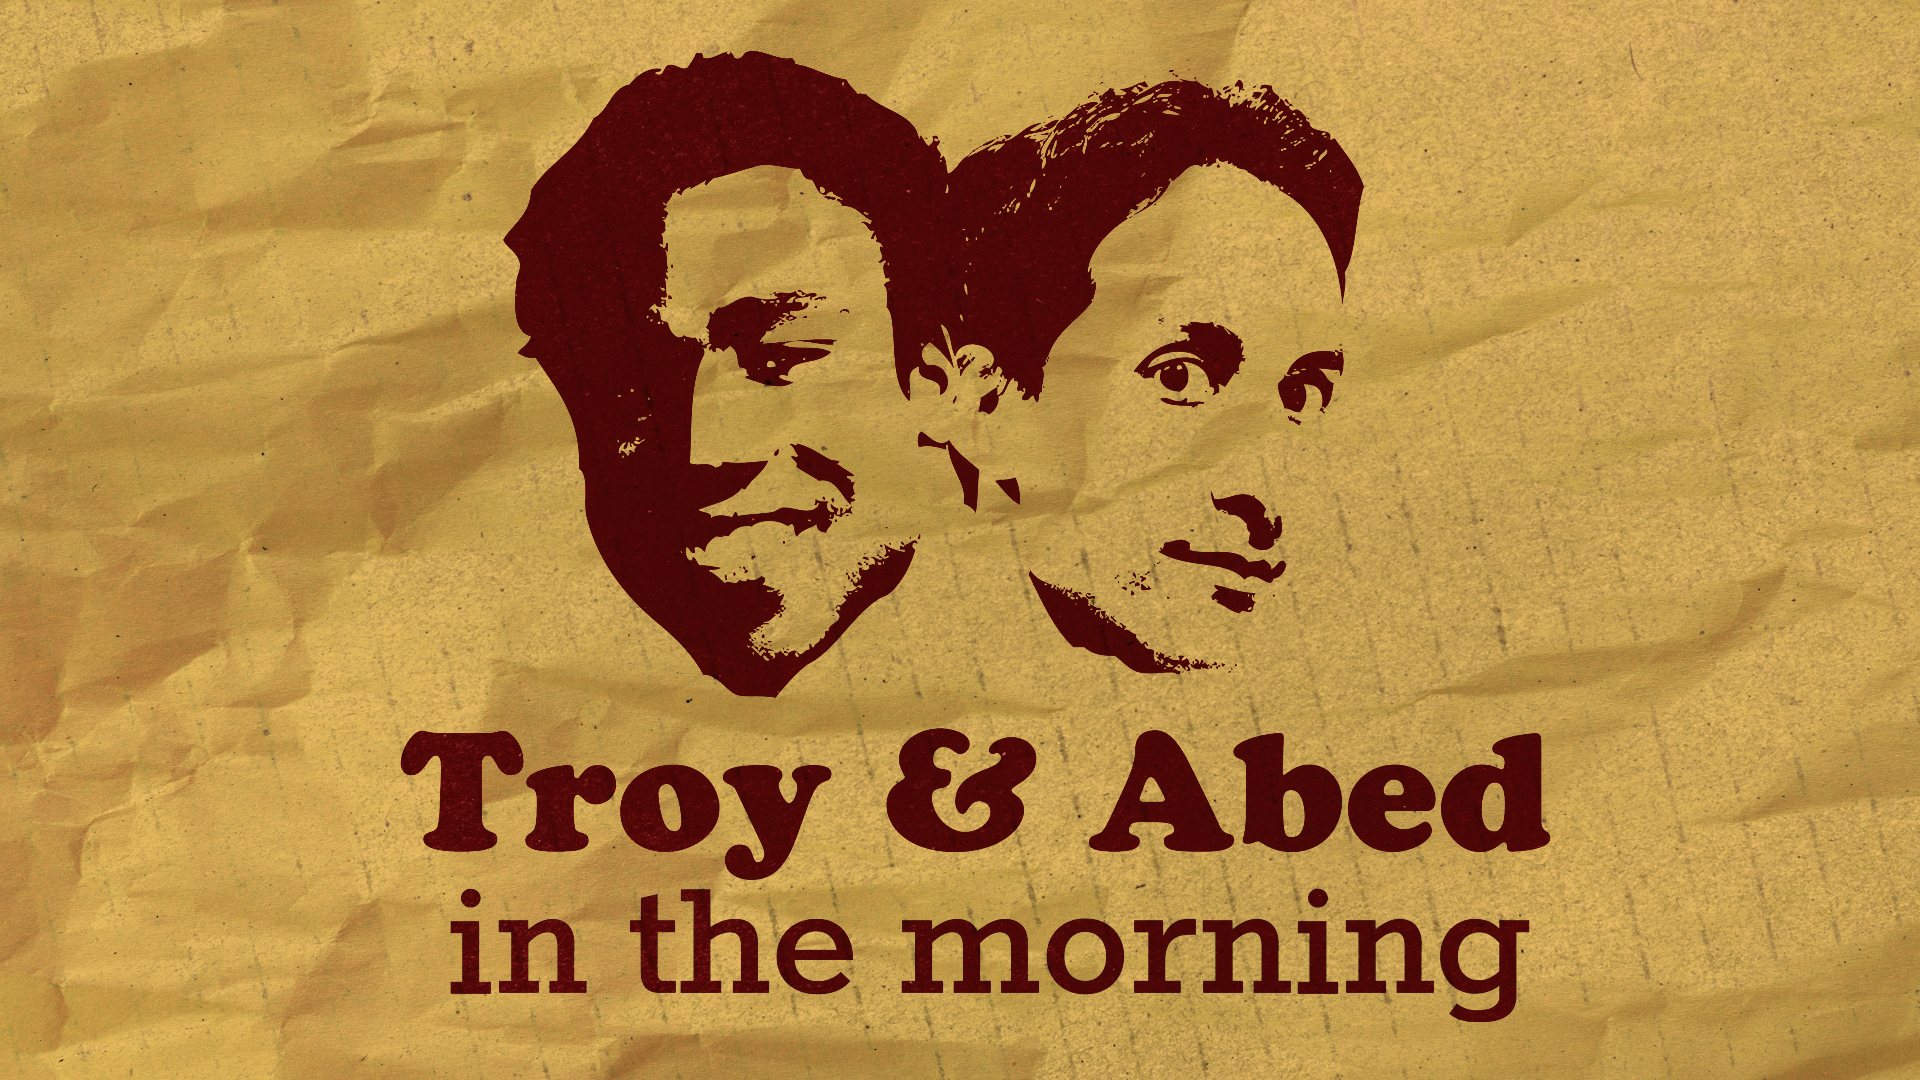 Troy and Abed in the morning by Boulinosaure on DeviantArt